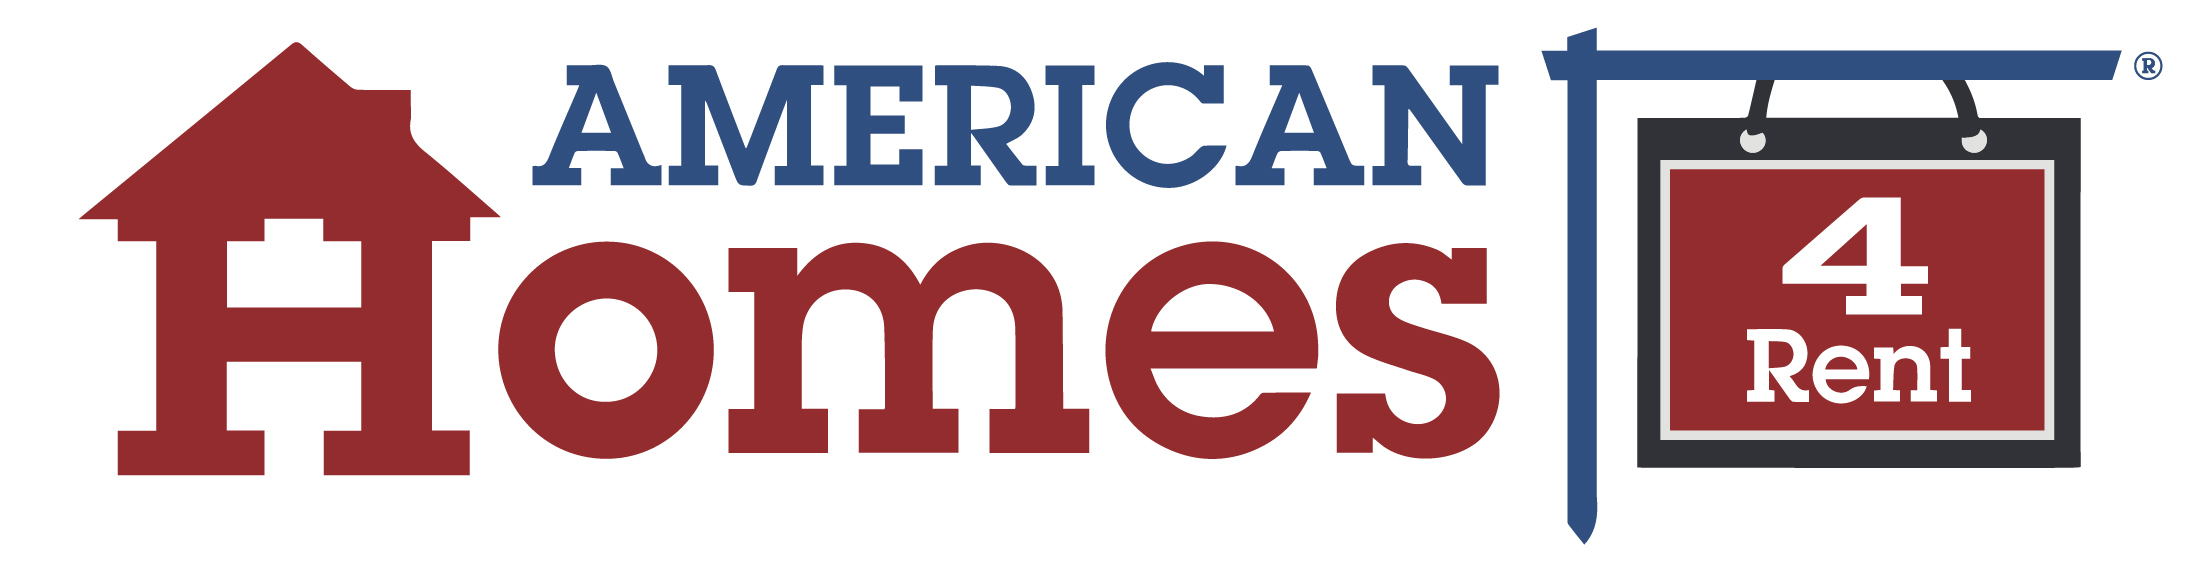 American Homes 4 Rent Announces Home Price Appreciation